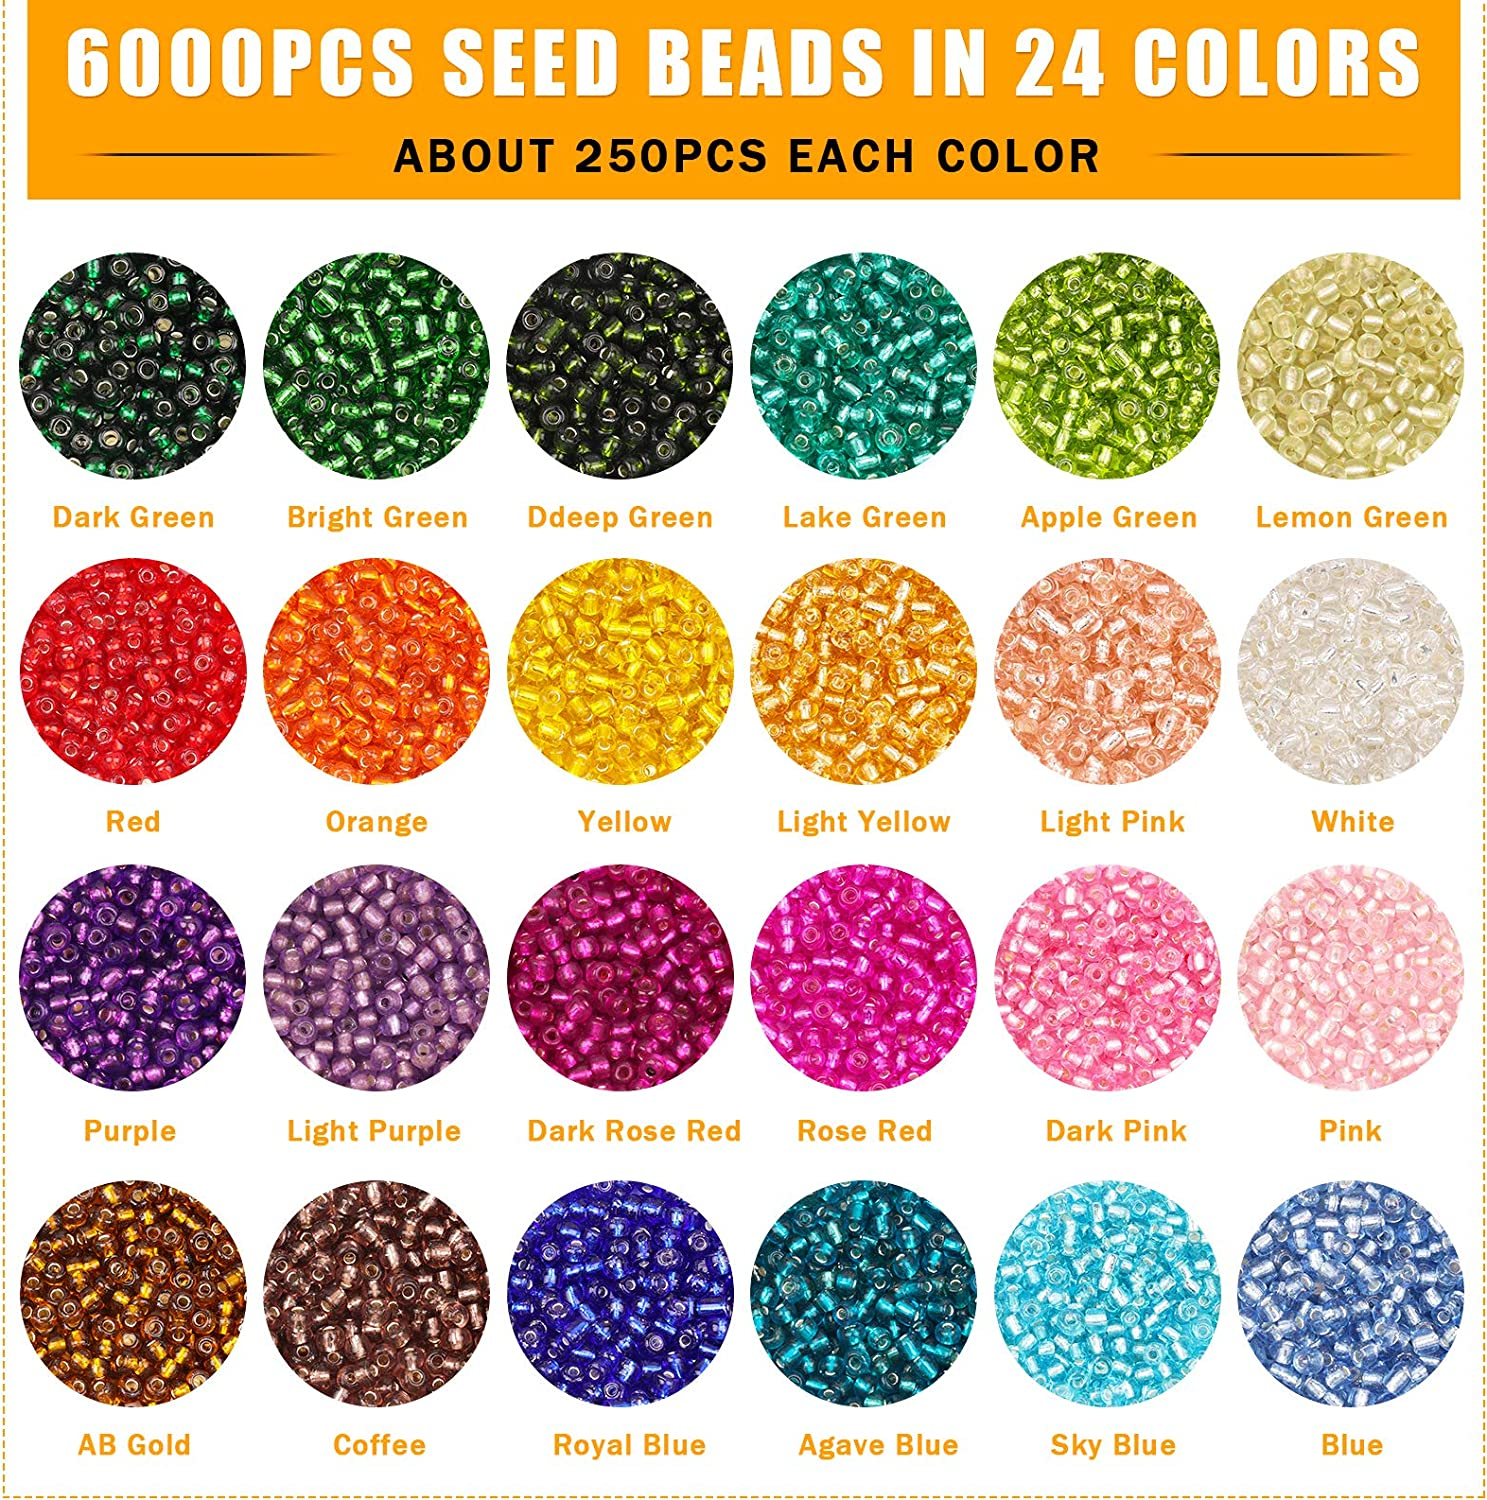 Gacuyi 24Colors Small Rainbow Pony Glass Beads Bulk with Jewelry Making Findings and Tools for Adult DIY Jewelry Making Bracelets Necklaces and Earrings 6000PCS 4mm 6//0 Glass Seed Beads kit